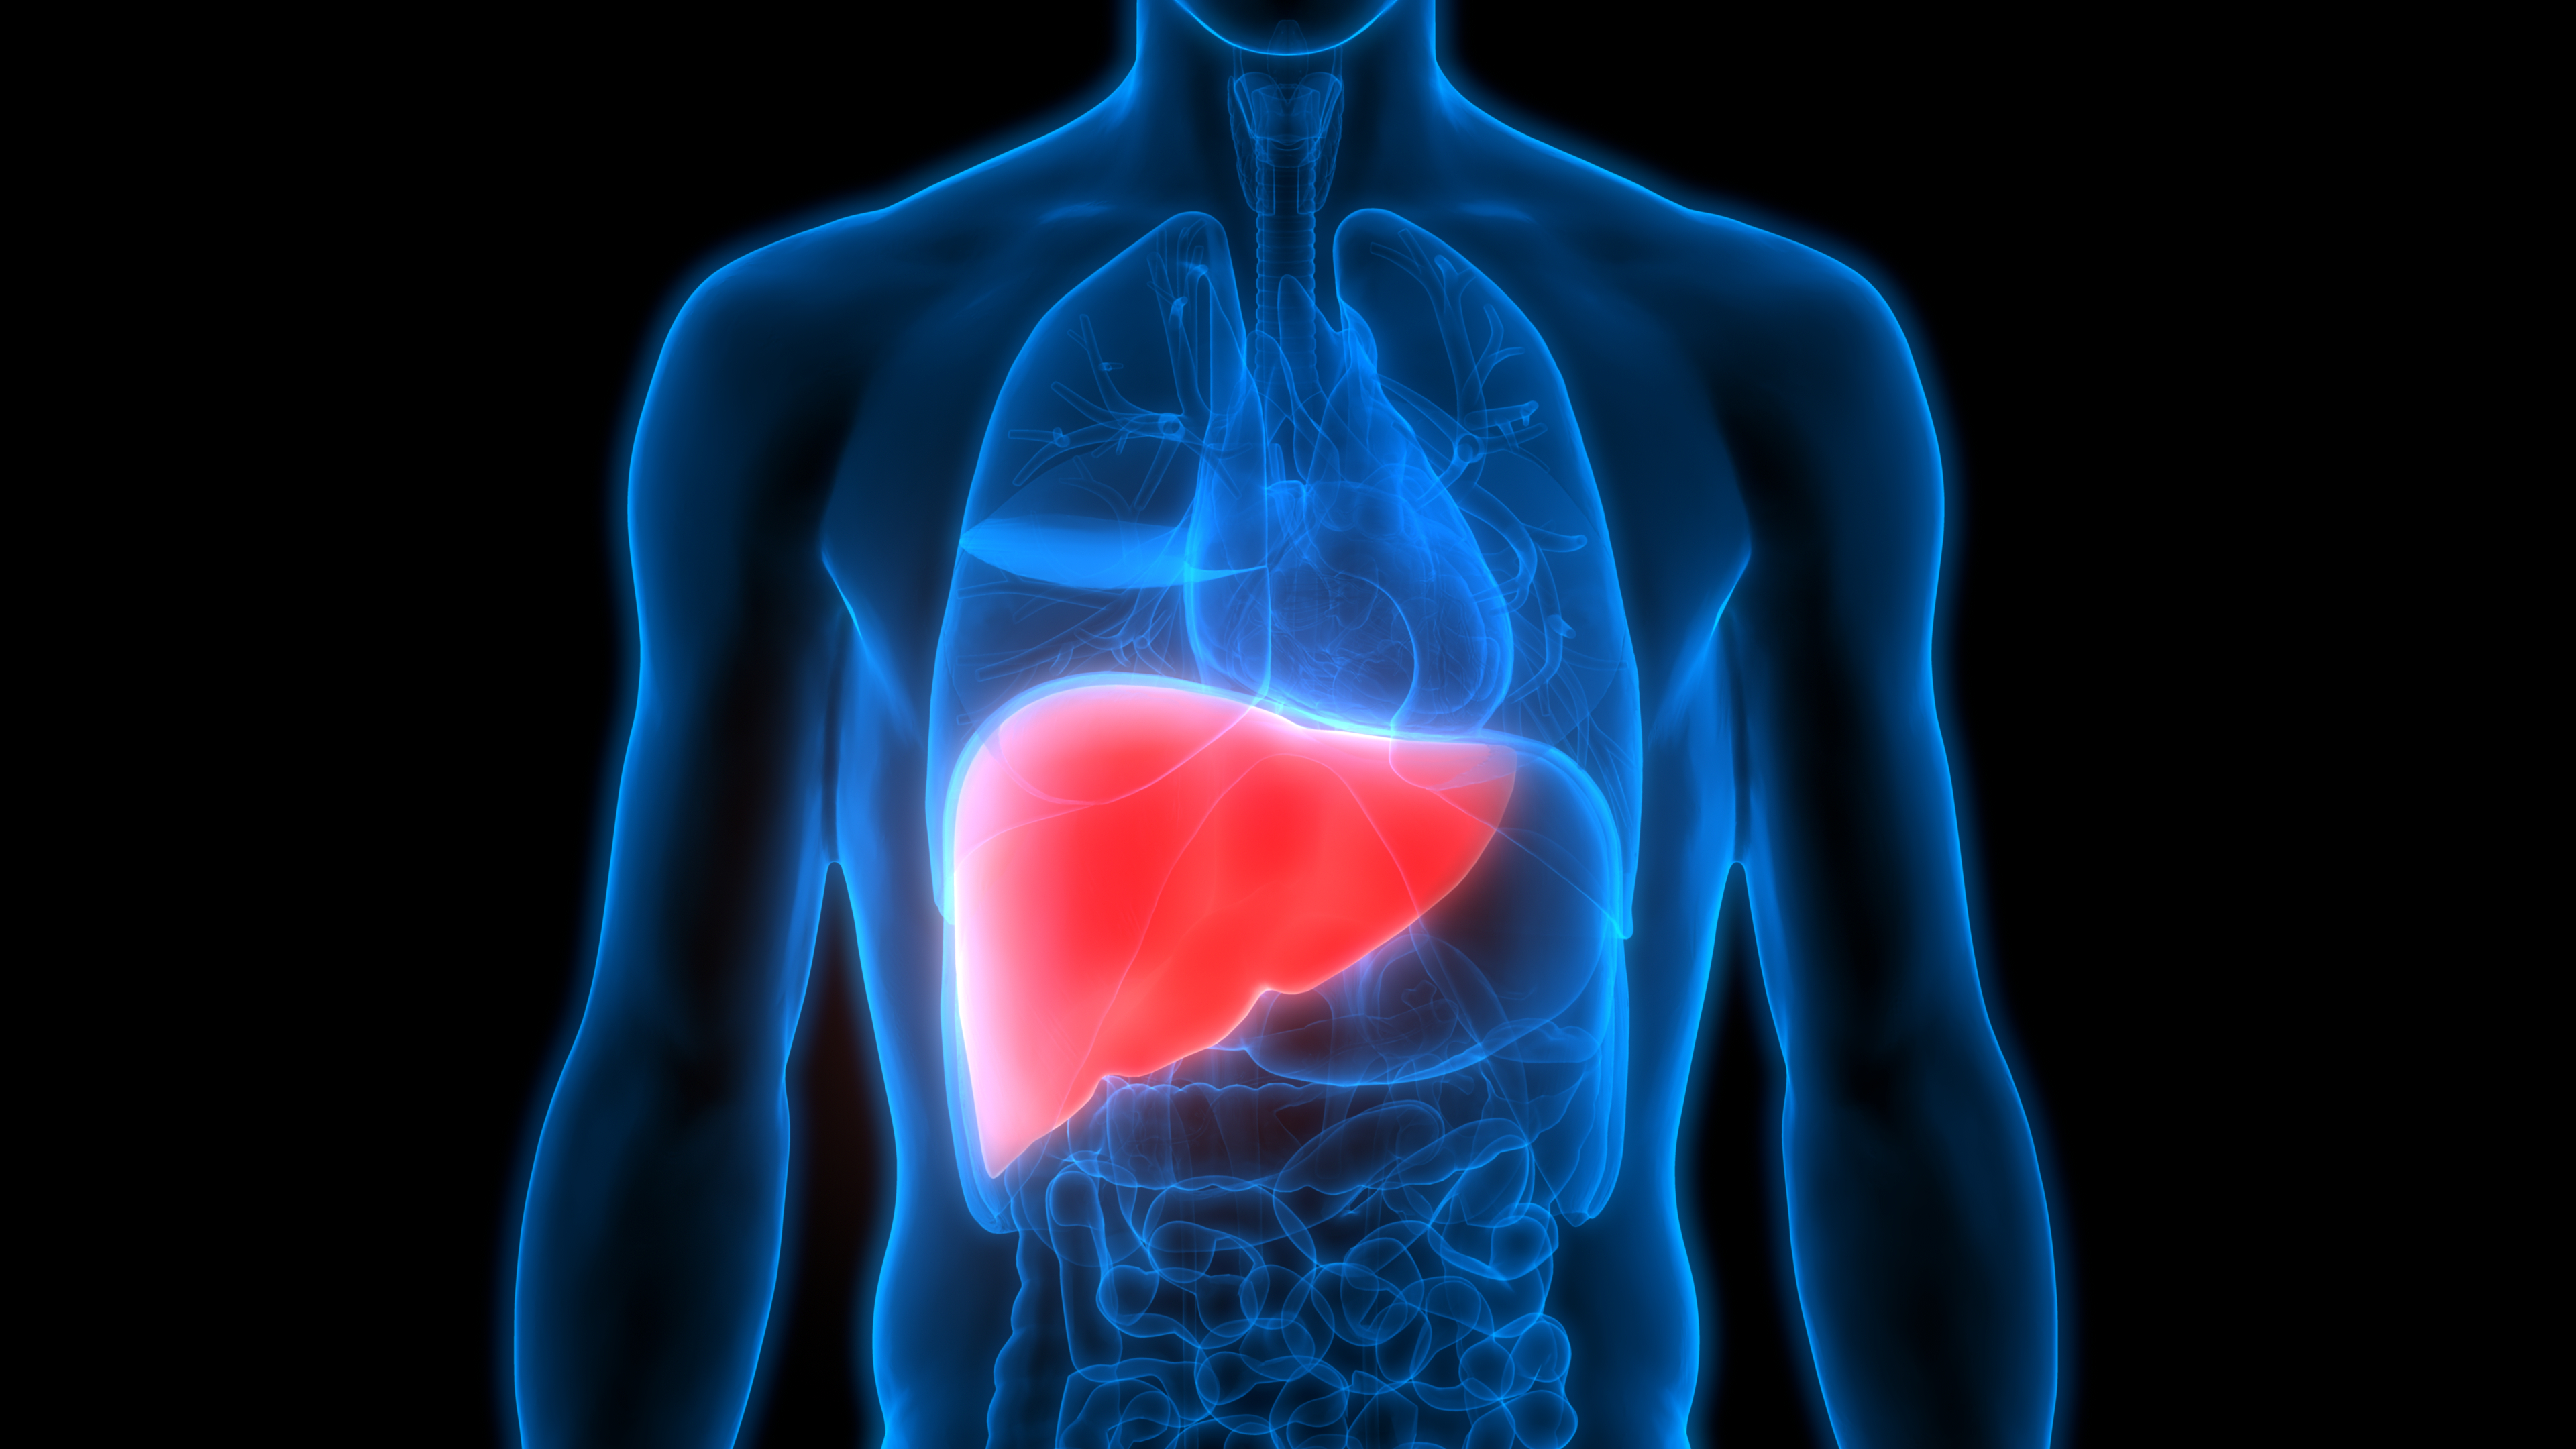 Fatty liver disease: What it is and what to do about it - Harvard Health